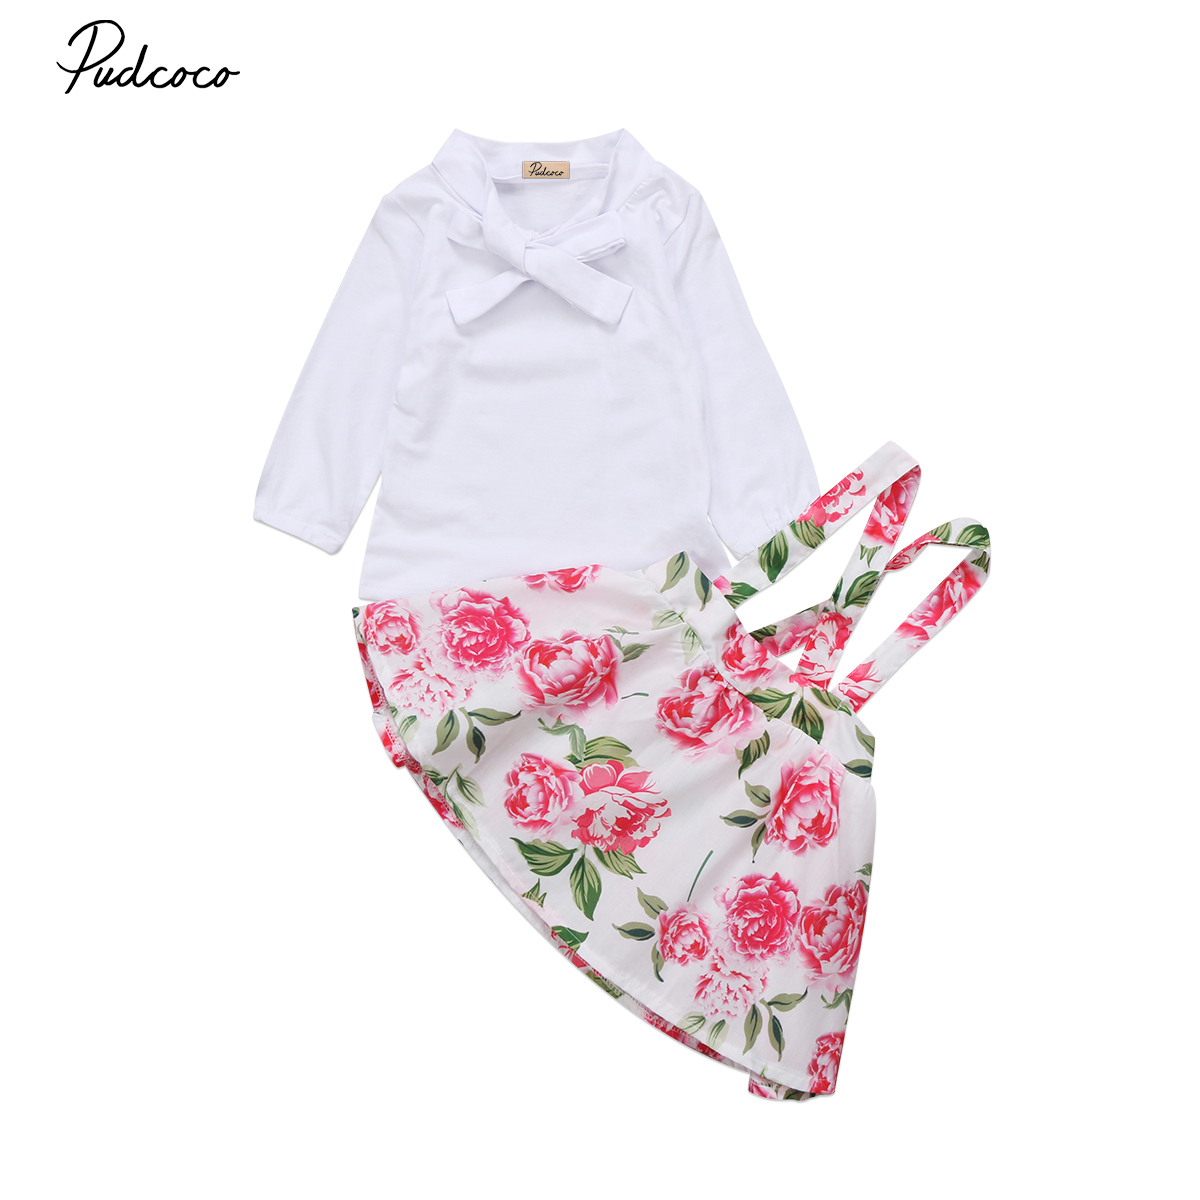 Lovely Kids Baby Girls Summer Floral Outfits Clothes Long Sleeve White T-shirt Tops+Flower Skirts Overalls Outfits Clothing Set girls baby long sleeve tops t shirt bib cartoon minnie 2pcs outfits set 1 5y